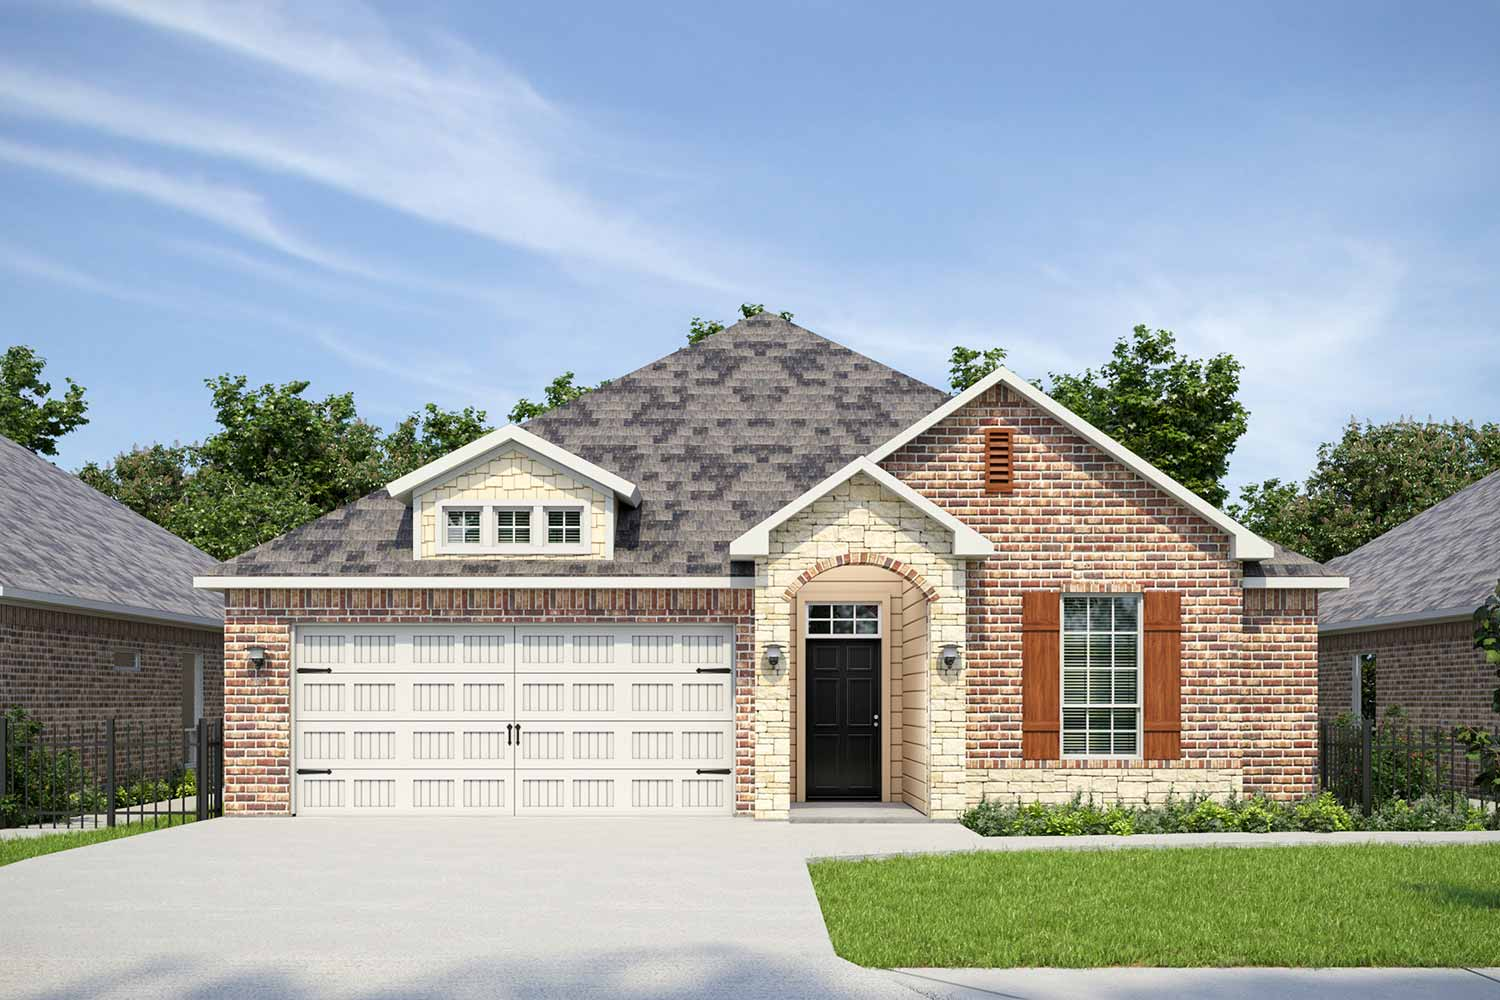 New Homes for Sale in Georgetown TX | 629 Scenic Bluff Dr